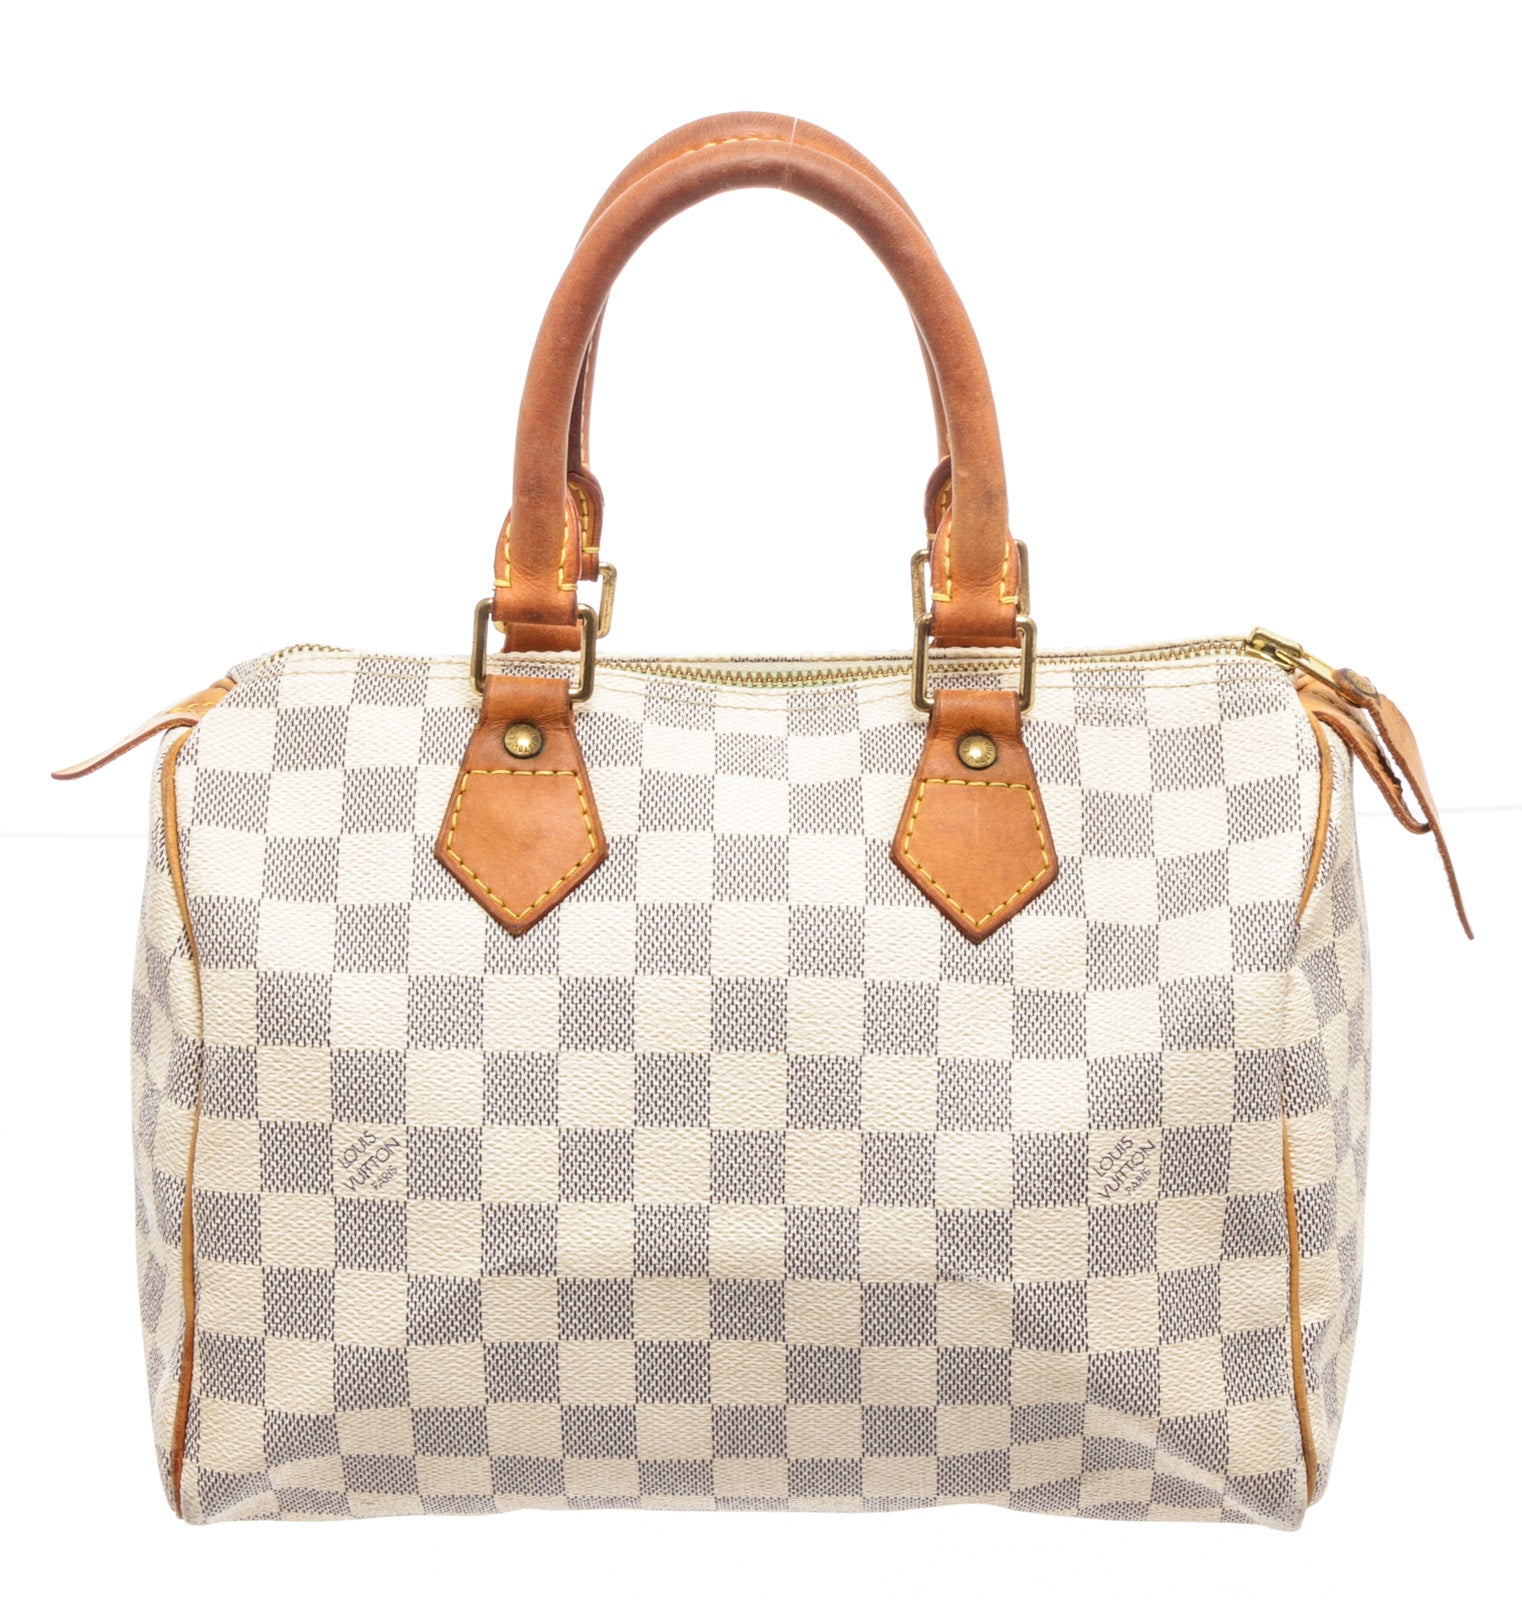 Louis Vuitton Brown Damier Azur Speedy 25cm Handbags